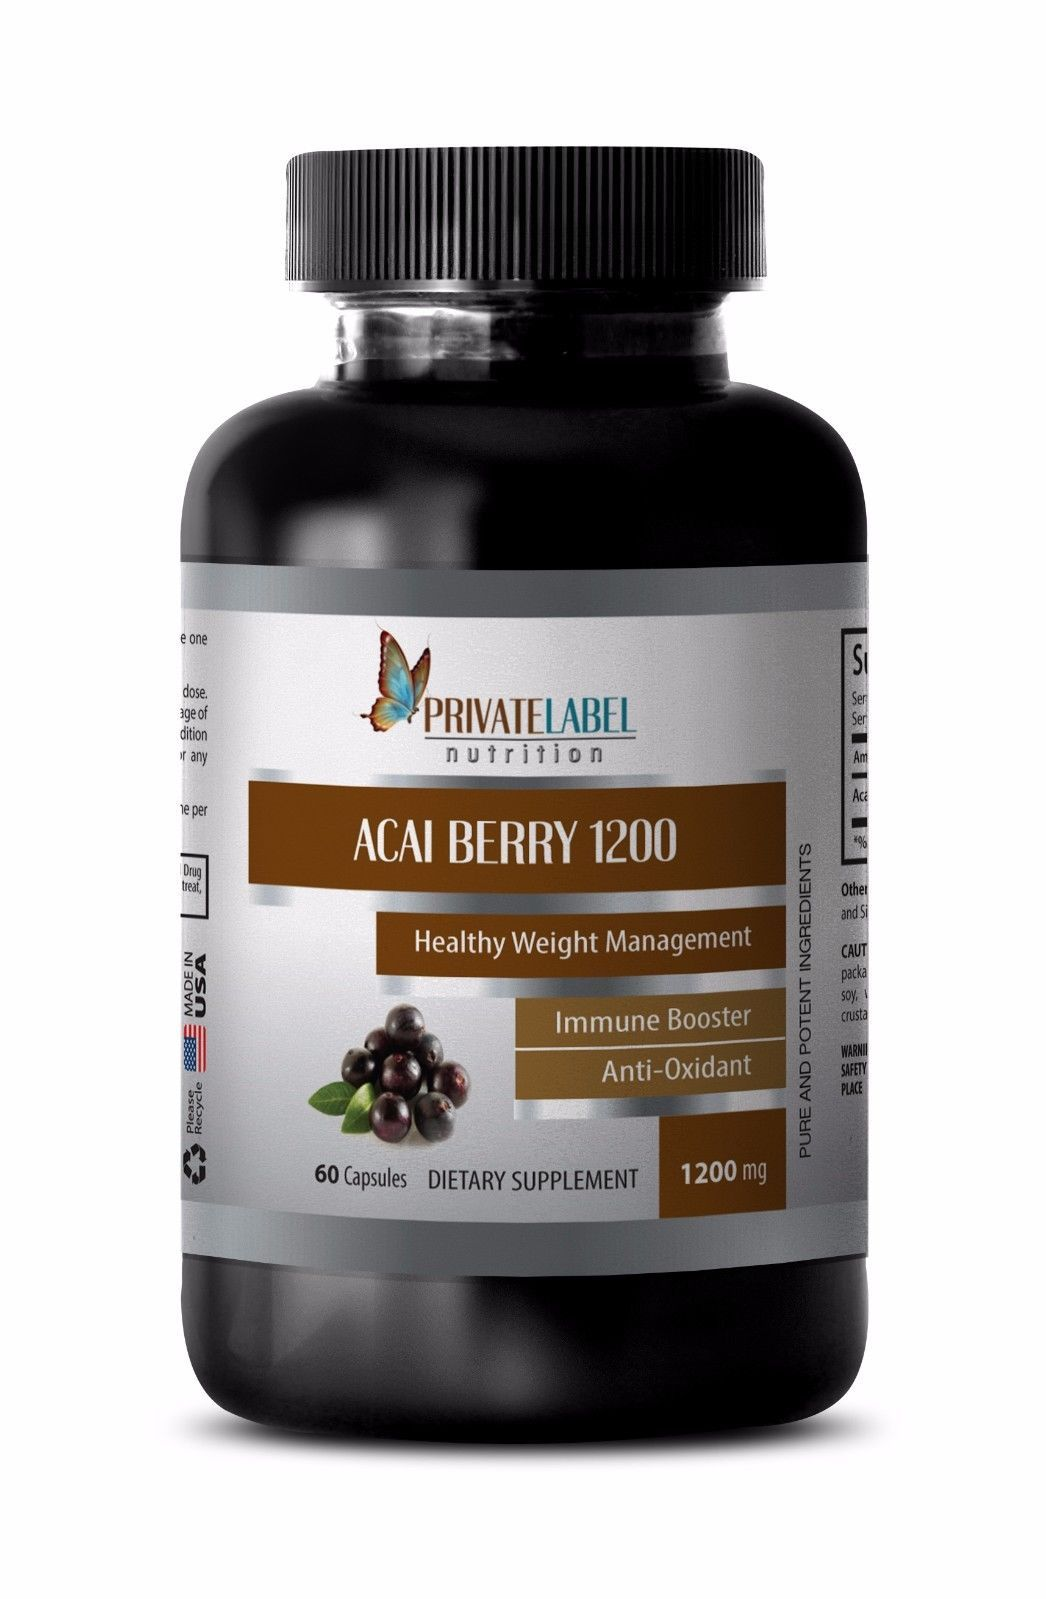 Acai Berry Lean With Green Tea Extract Super Anti Oxidant